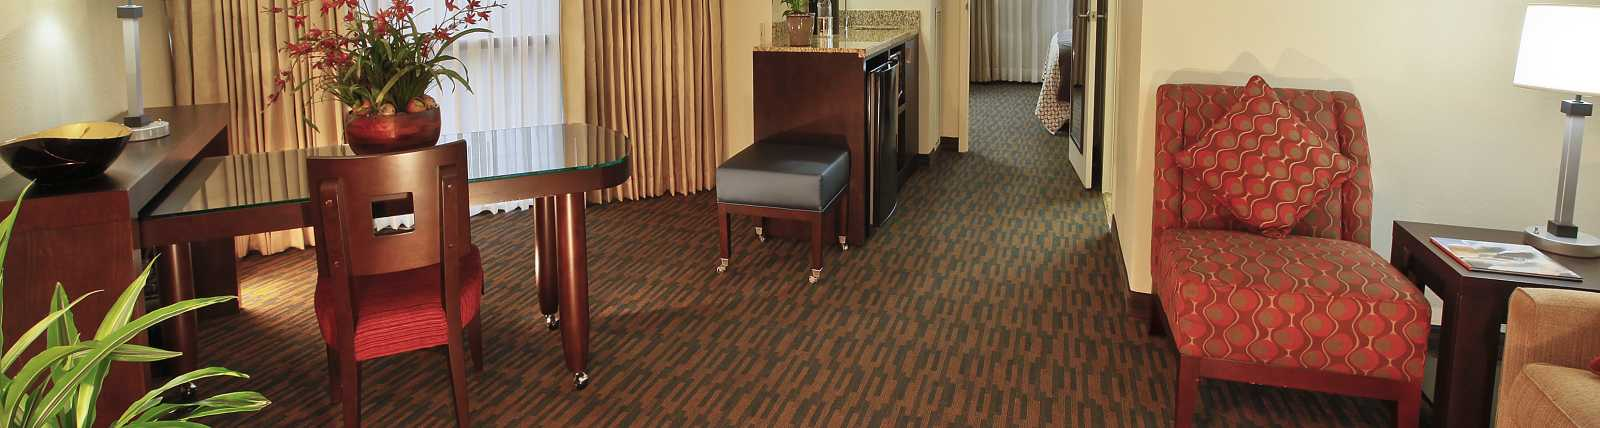 meeting-facility-Embassy_Suites_Seattle-Tacoma_International_Airport_Meeting_Facility-4.jpg